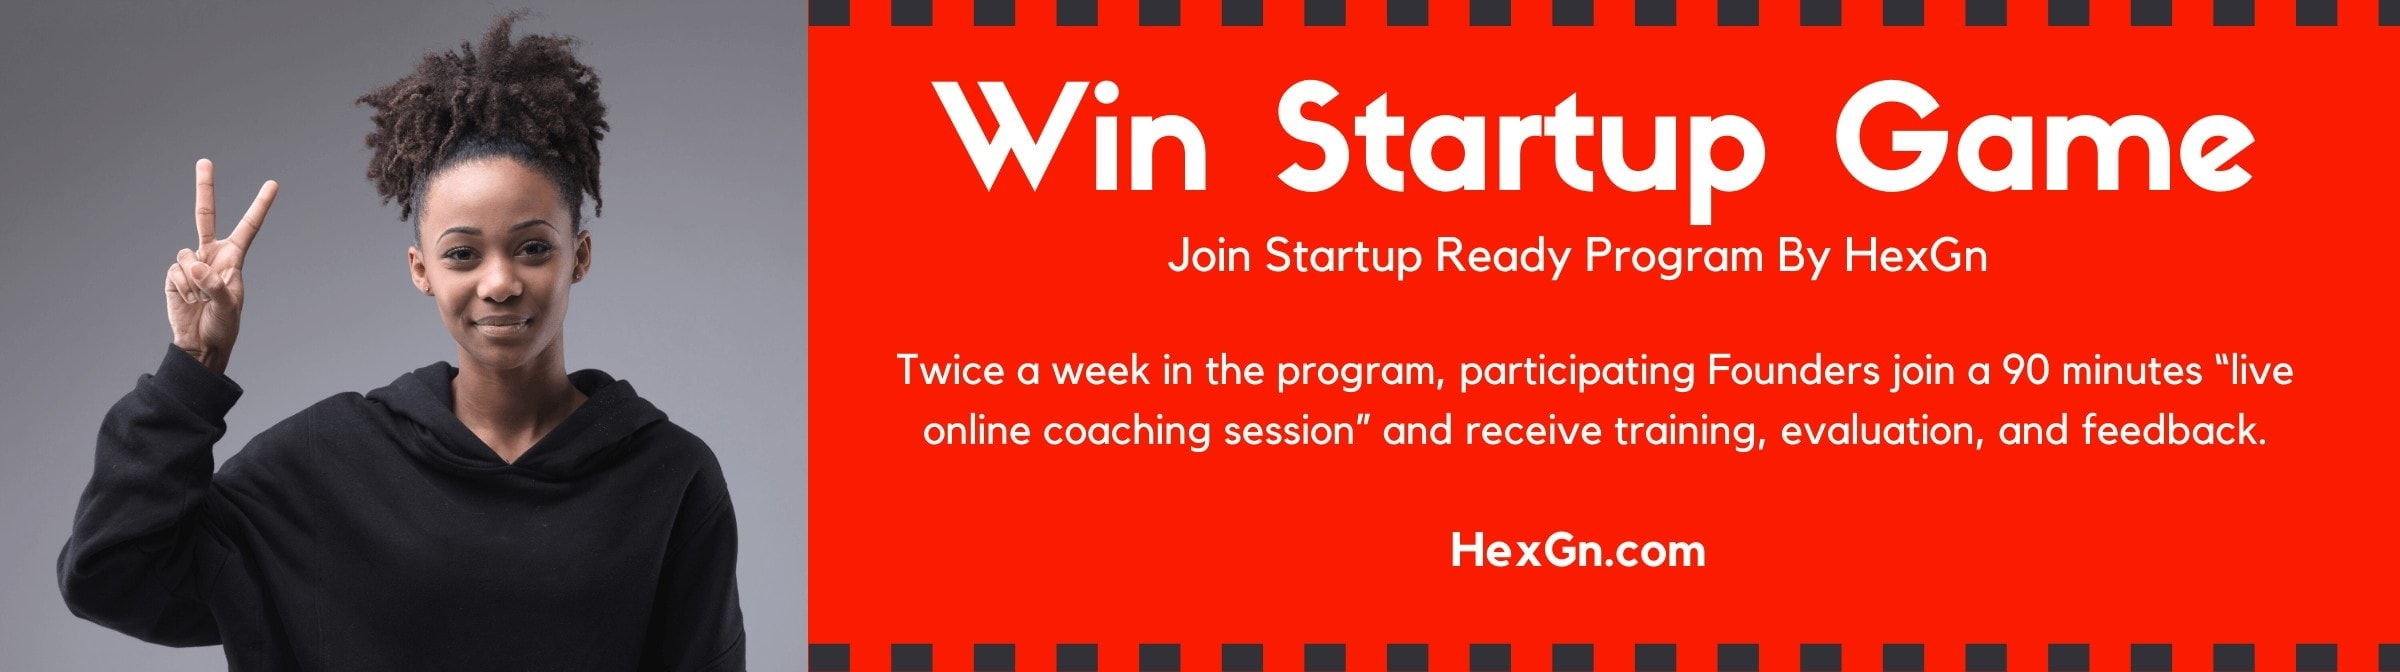 Startup Ready by HexGn is an online acceleration program created by entrepreneurs for entrepreneurs – to help you transform your idea into an actionable business plan in just 3 months.